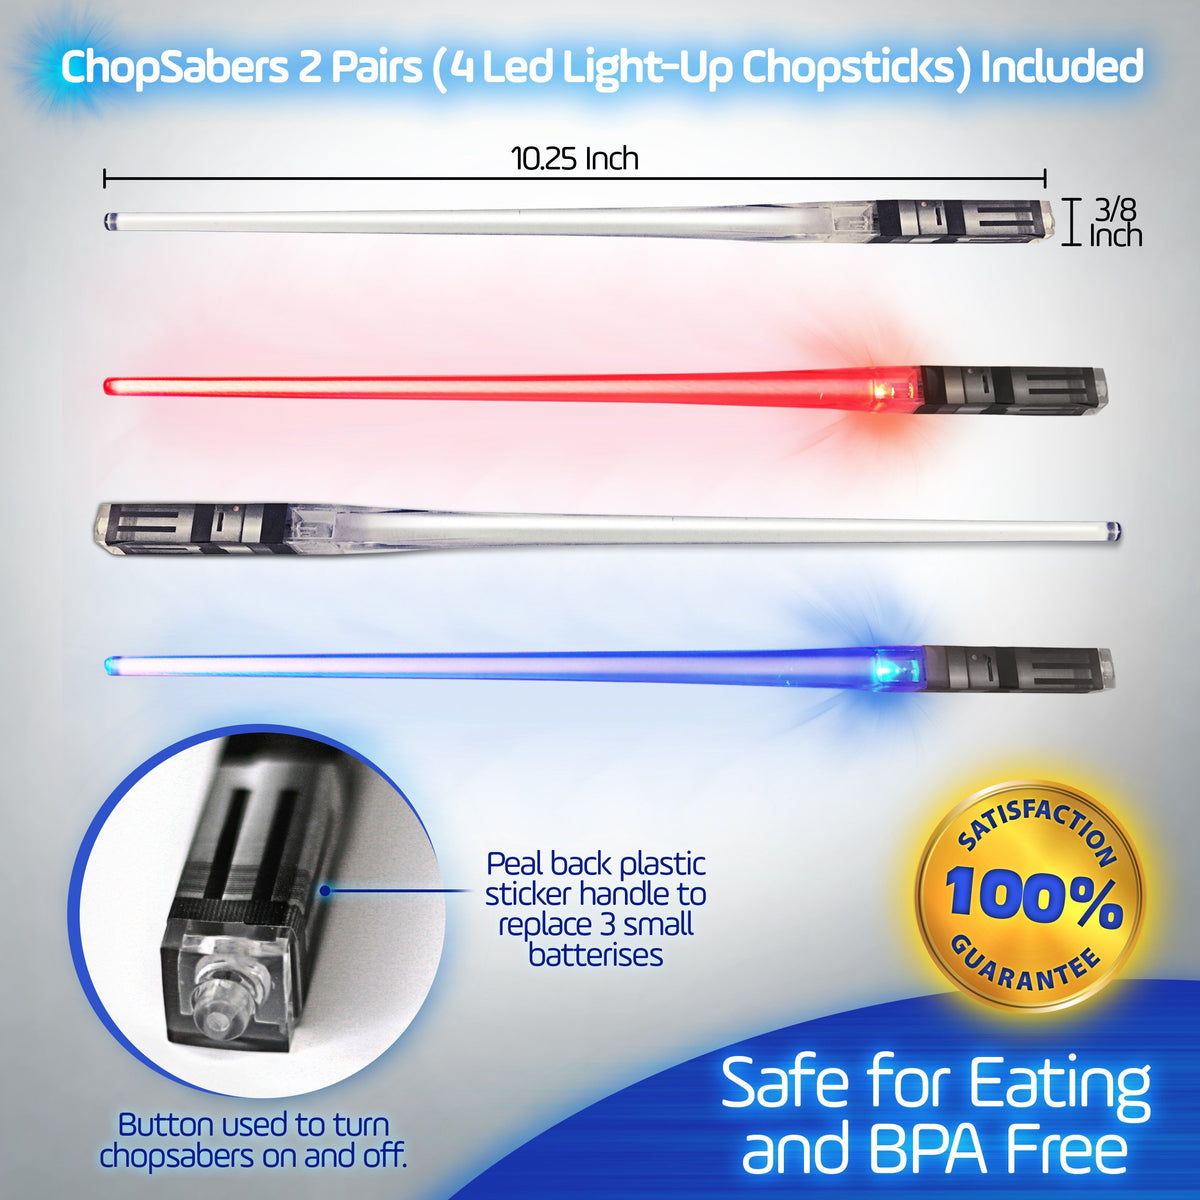 Lightsaber Chopsticks Light Up LED Reusable - 2 Pairs